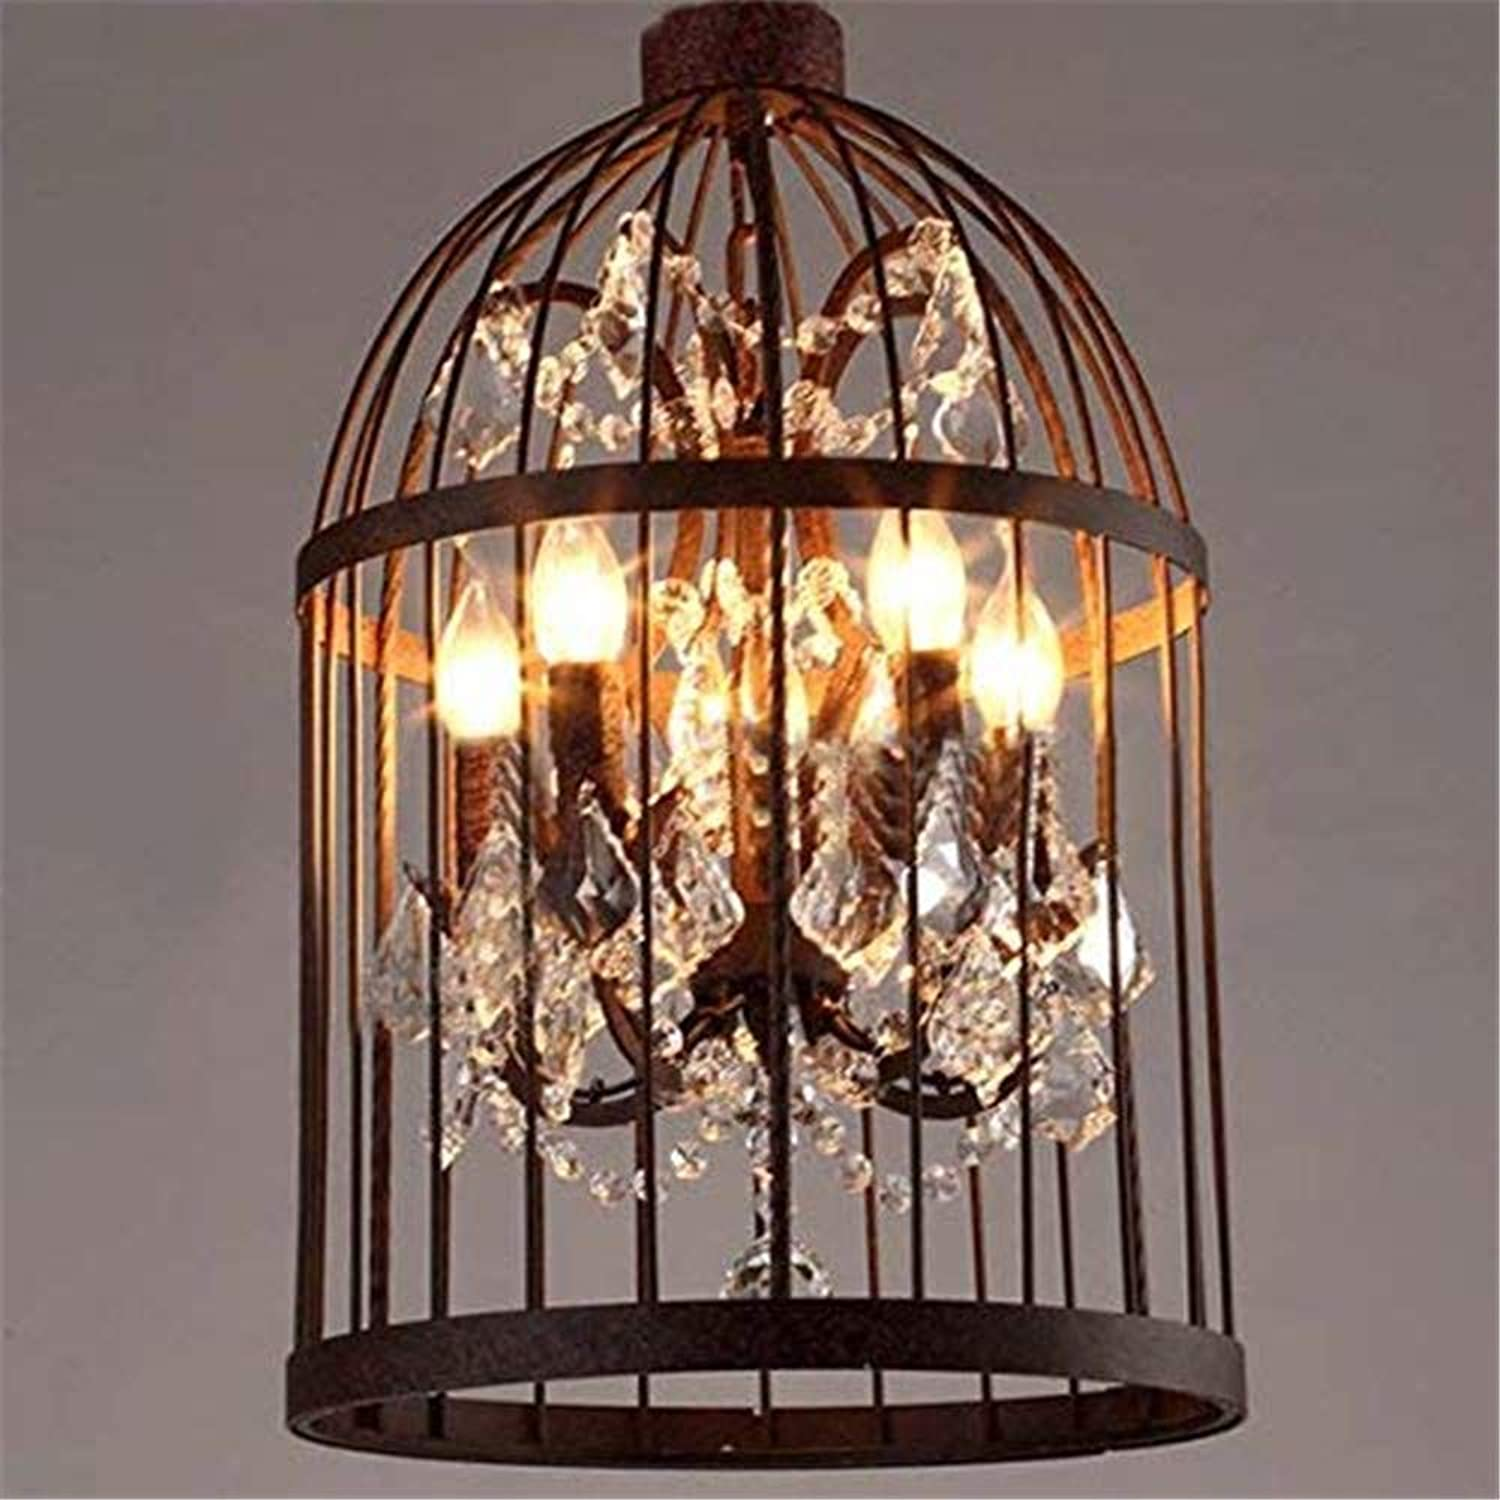 Ruanpu Industrial 13.78  4 Lights Pendant Retro Chandelier Vintage Ceiling Light lamp Bird Cage Shaped Bedroom Pendant with Crystal Accent (Rust)